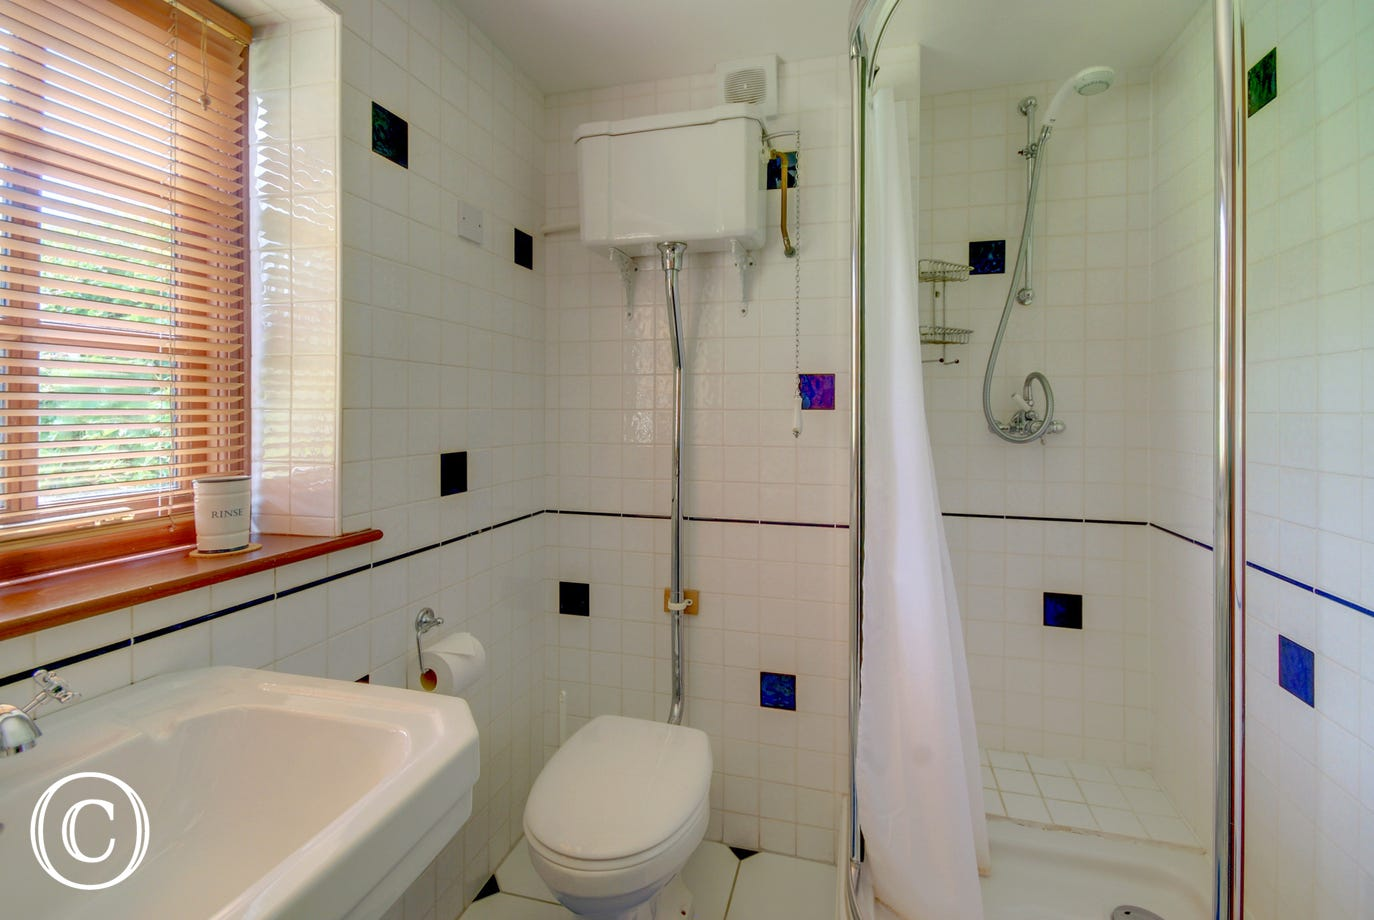 The downstairs shower room